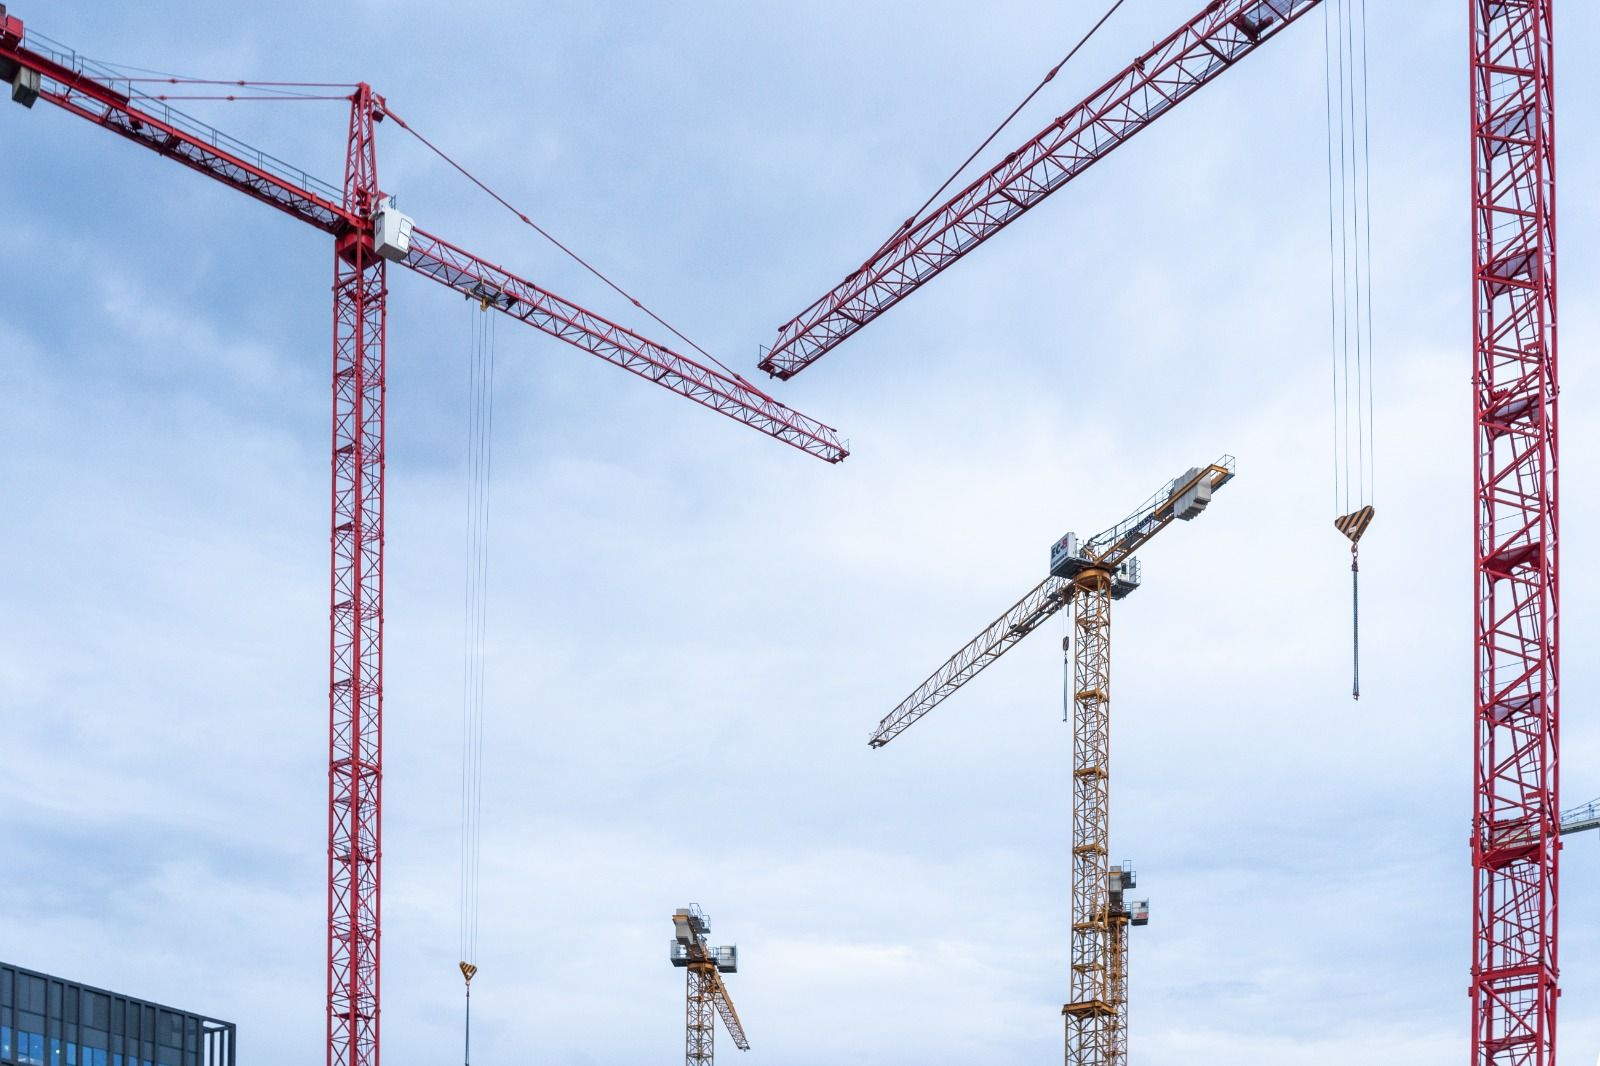 5 challenges the construction industry is facing in 2021